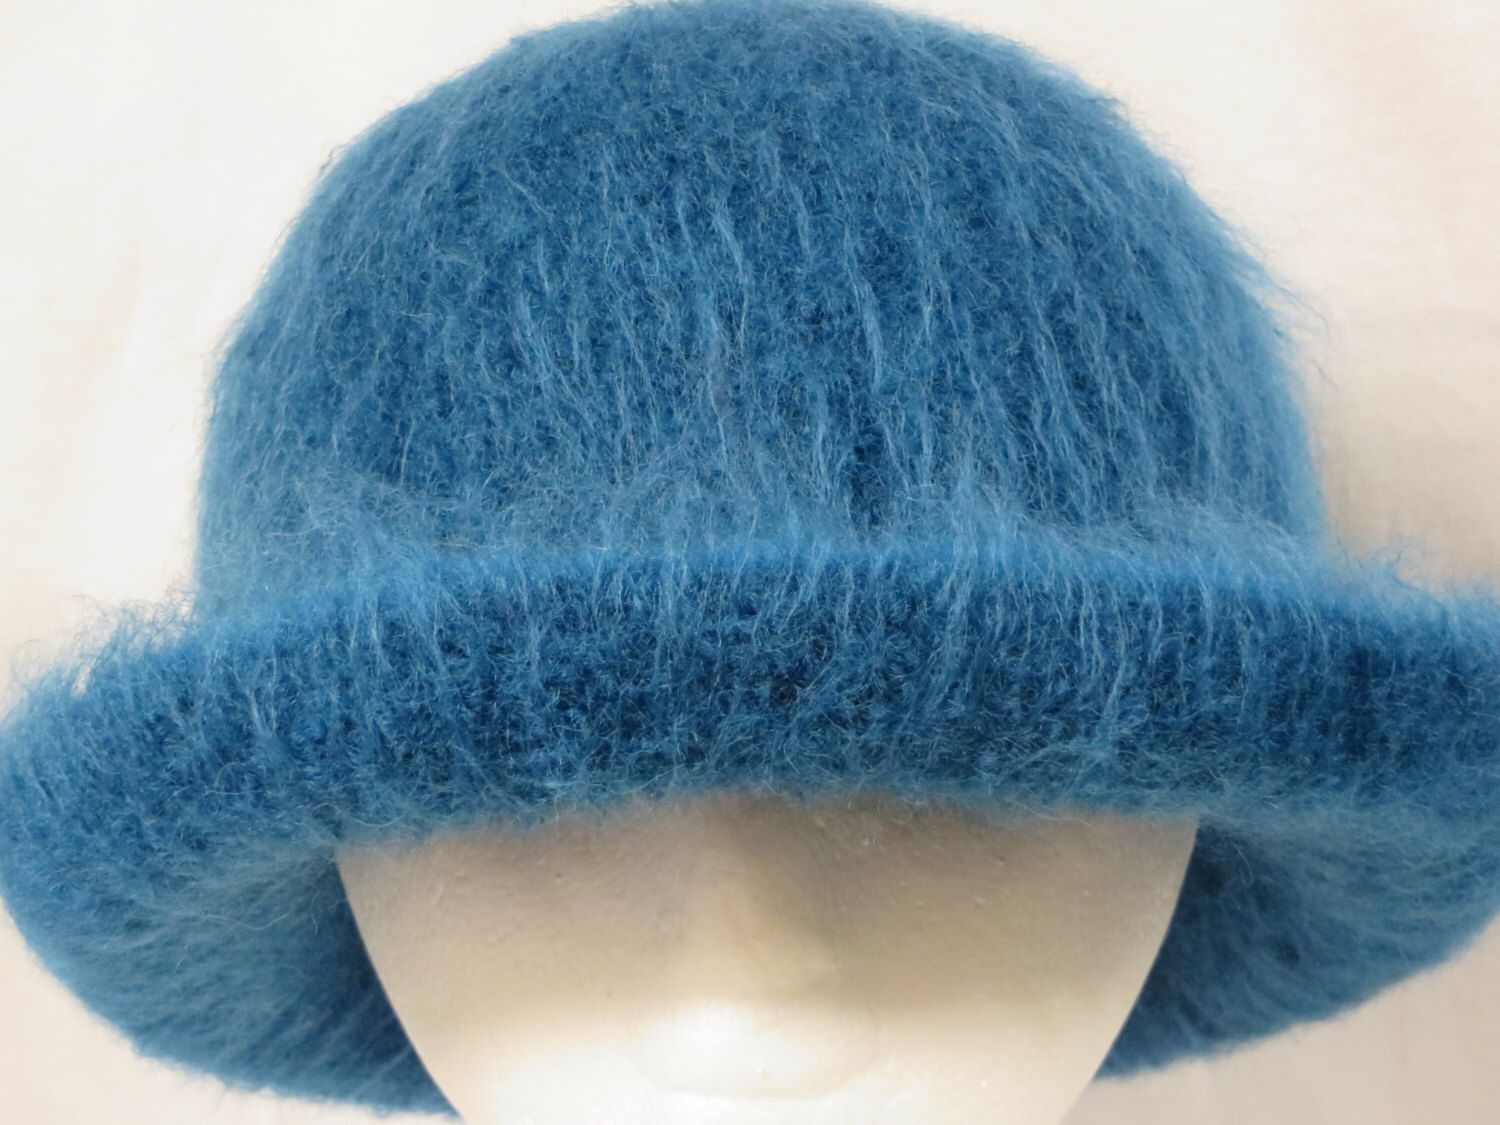 Hat Wool Felted Peacock Blue with Rolled Brim by DebGHats on Etsy https://www.etsy.com/listing/210359300/hat-wool-felted-peacock-blue-with-rolled